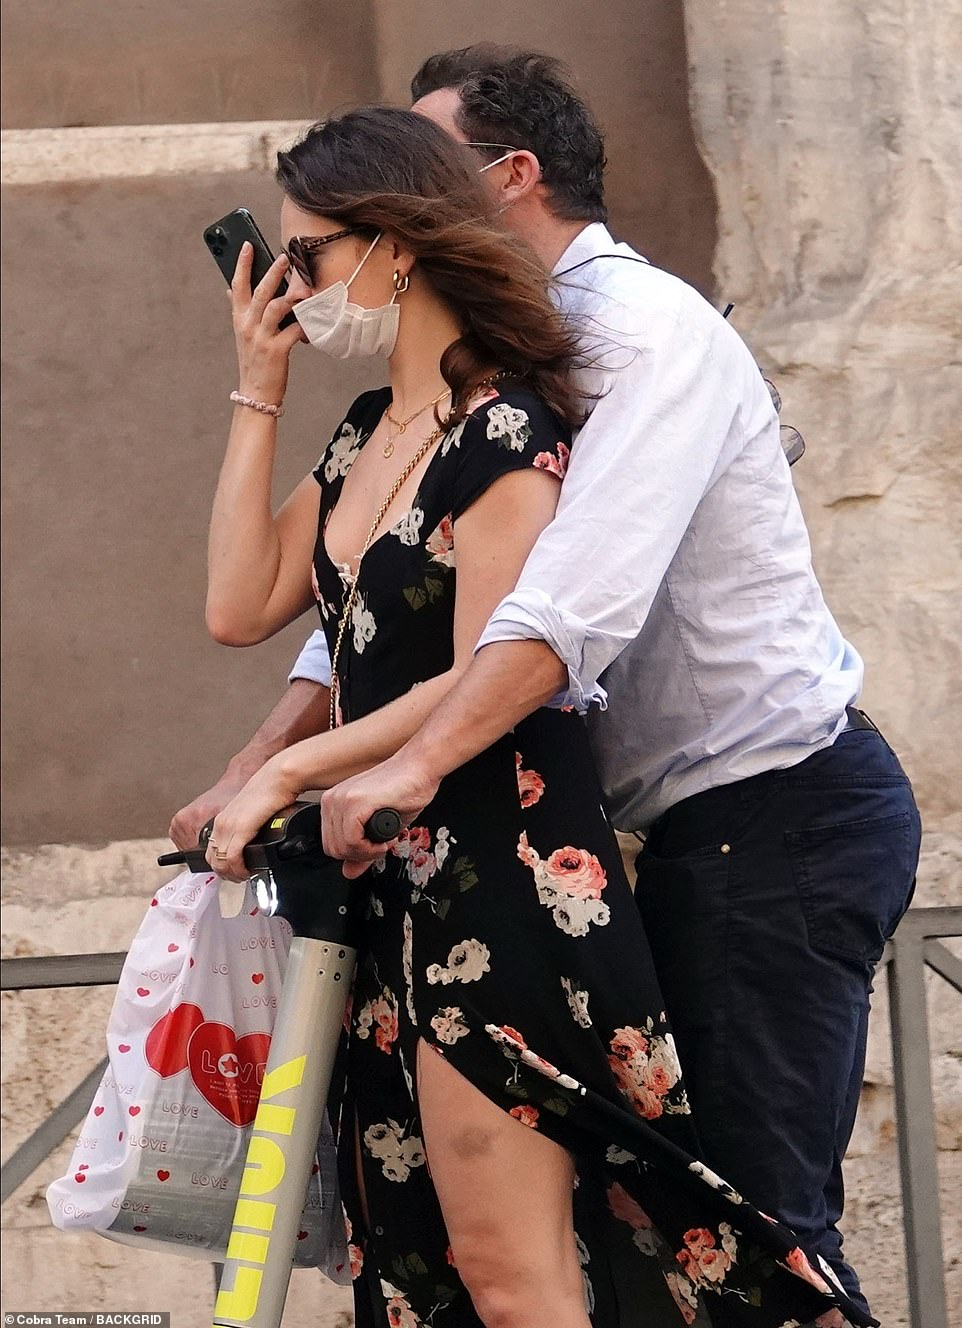 Cosy:The actor, 50, and the Mamma Mia! star, 31, didn't seem to mind who saw them as they cuddled up to one another and shared a ride on an electric scooter while taking in the sights, tenderly touching throughout the day